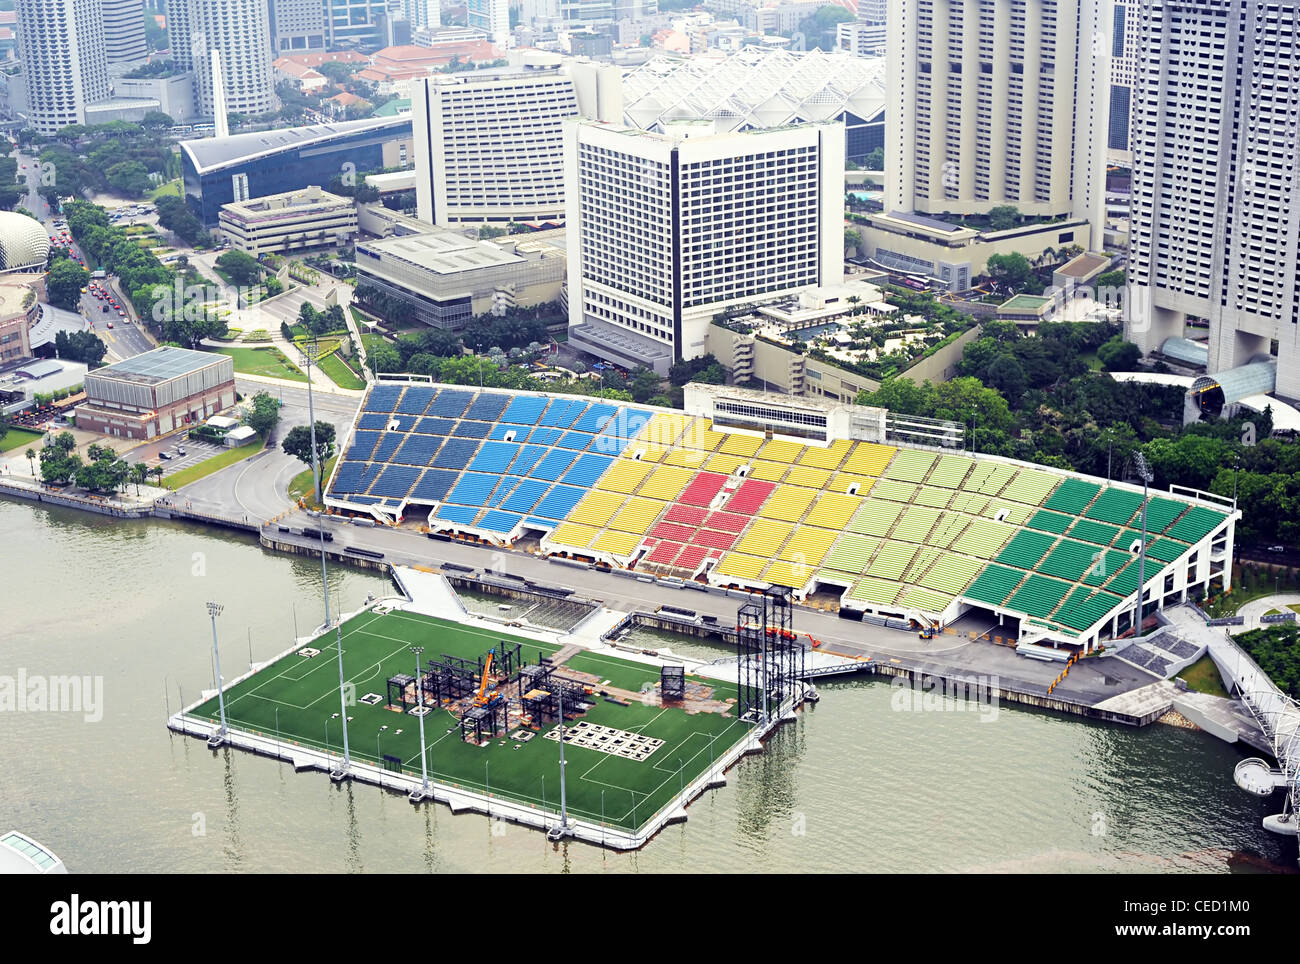 Aerial view of Singapore with construstion site of soccer stadium - Stock Image